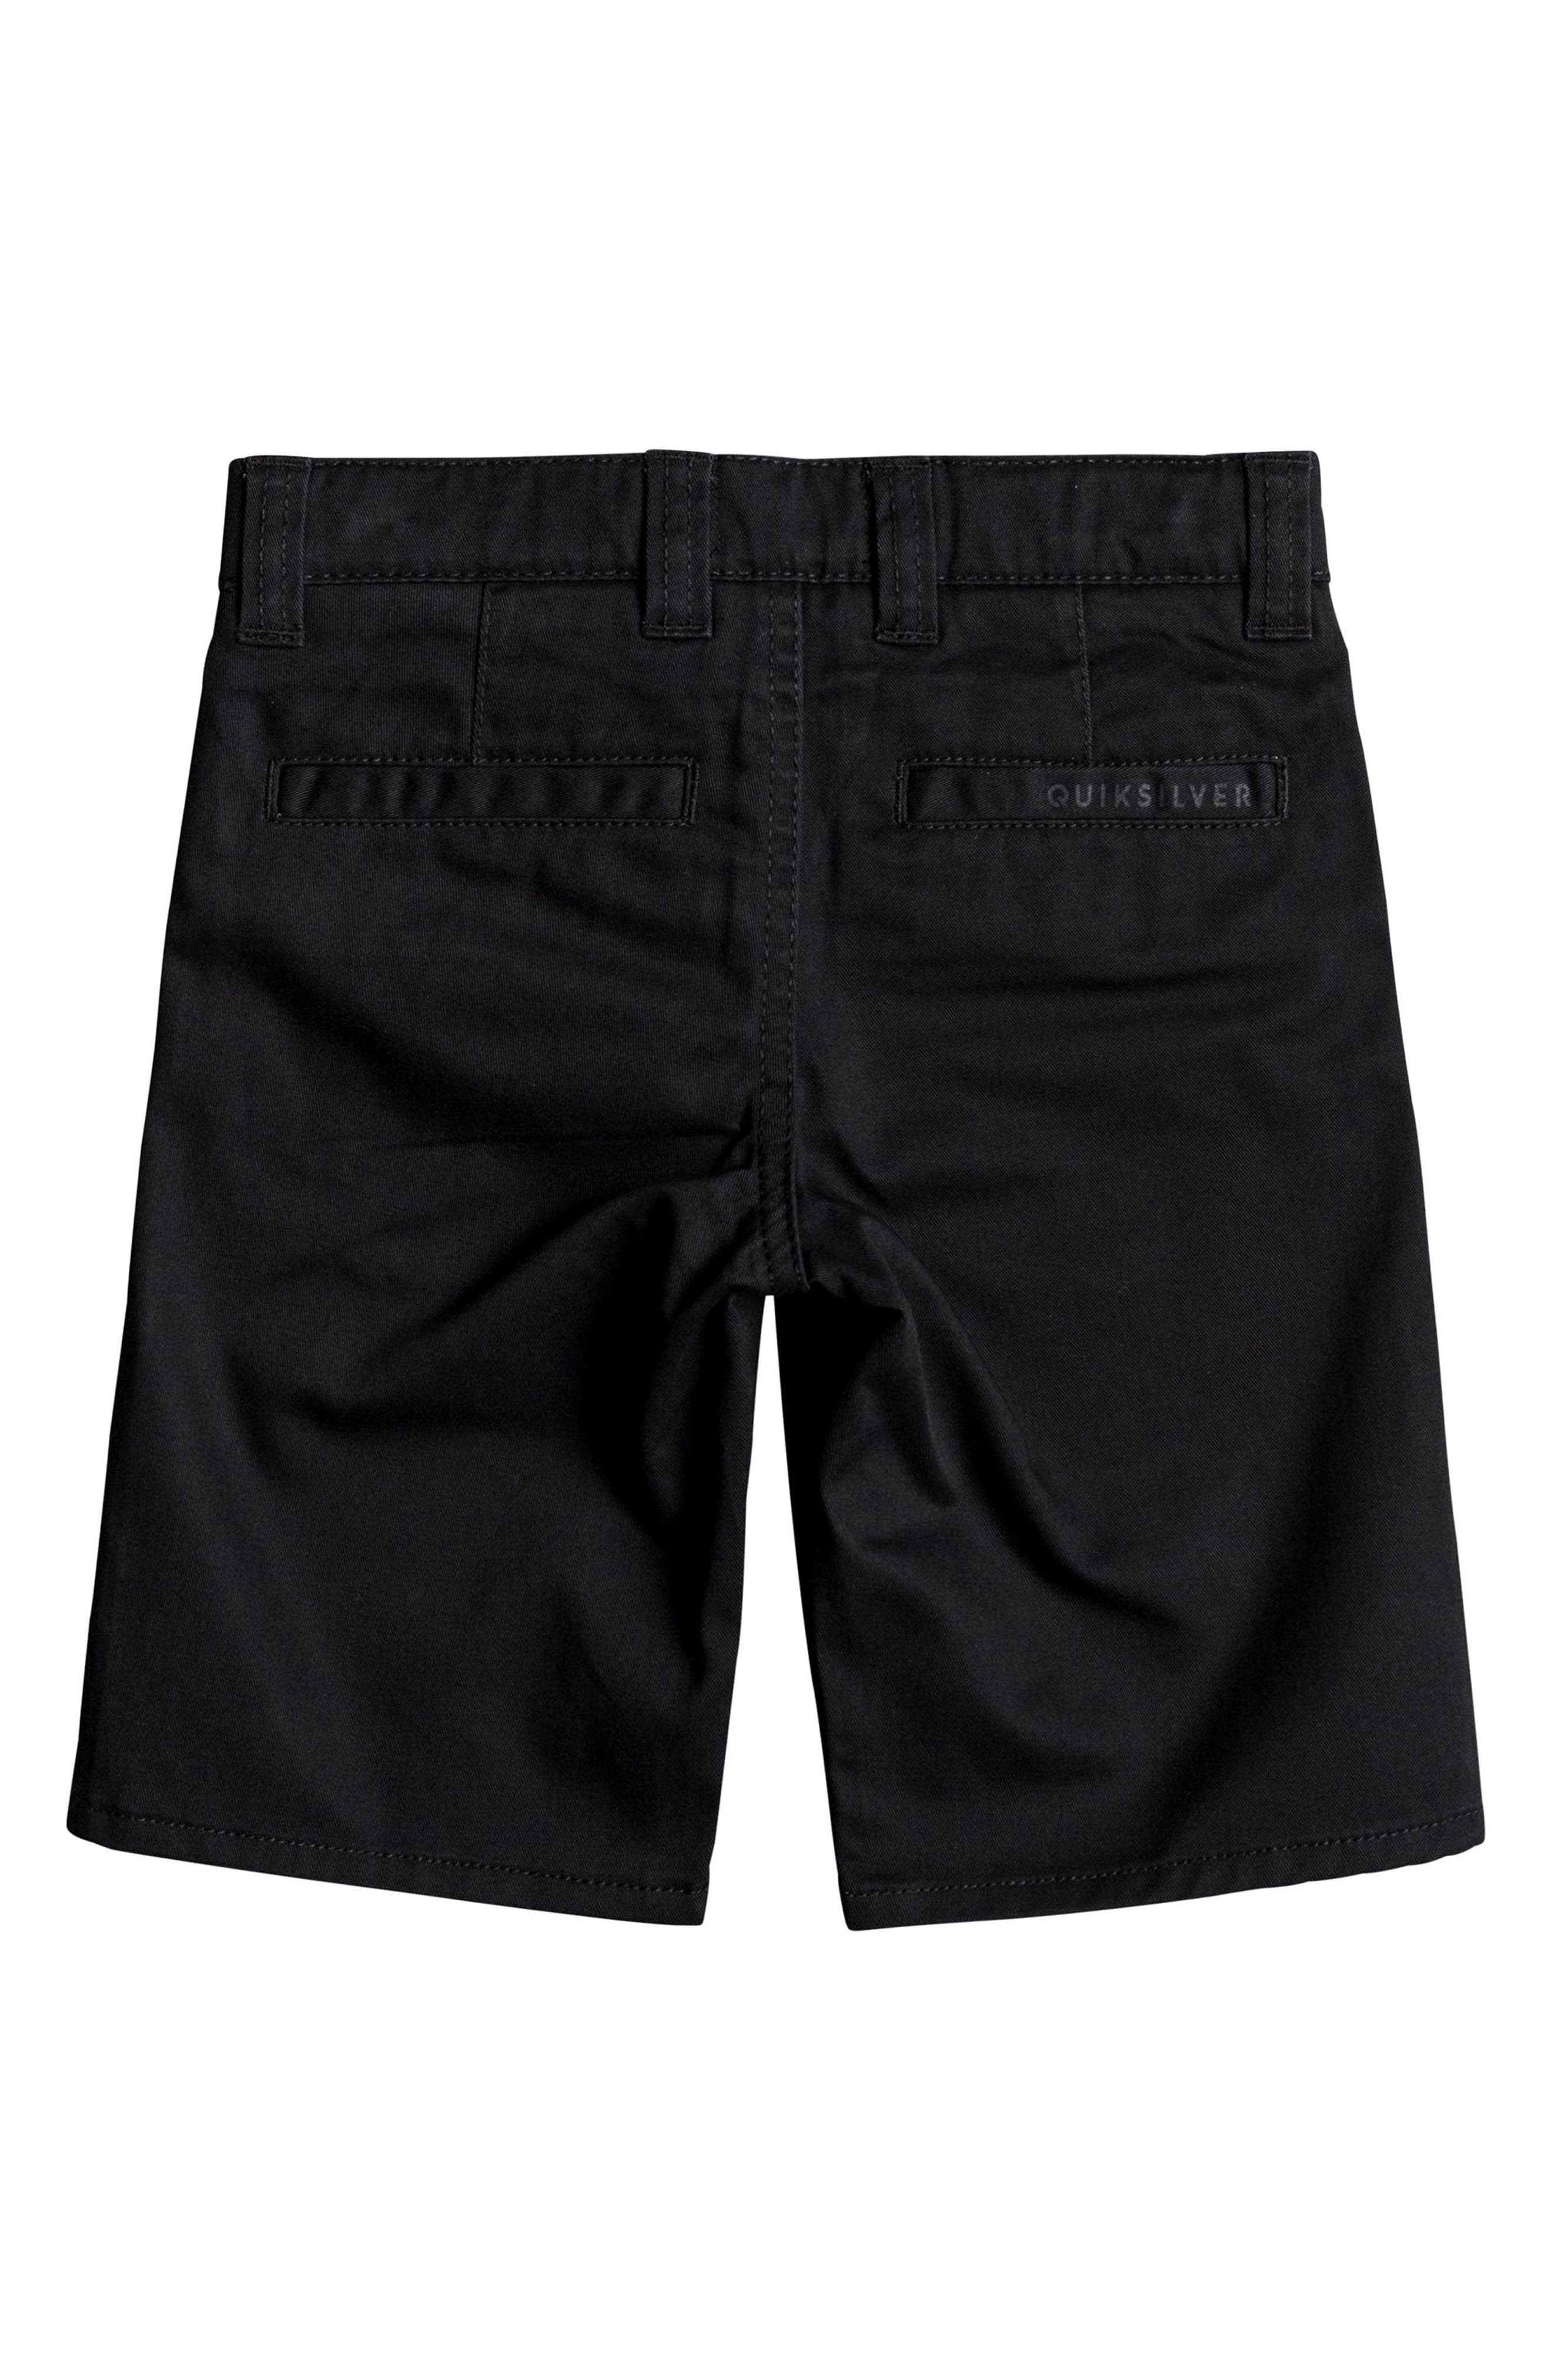 Everyday Union Stretch Shorts,                             Alternate thumbnail 2, color,                             BLACK